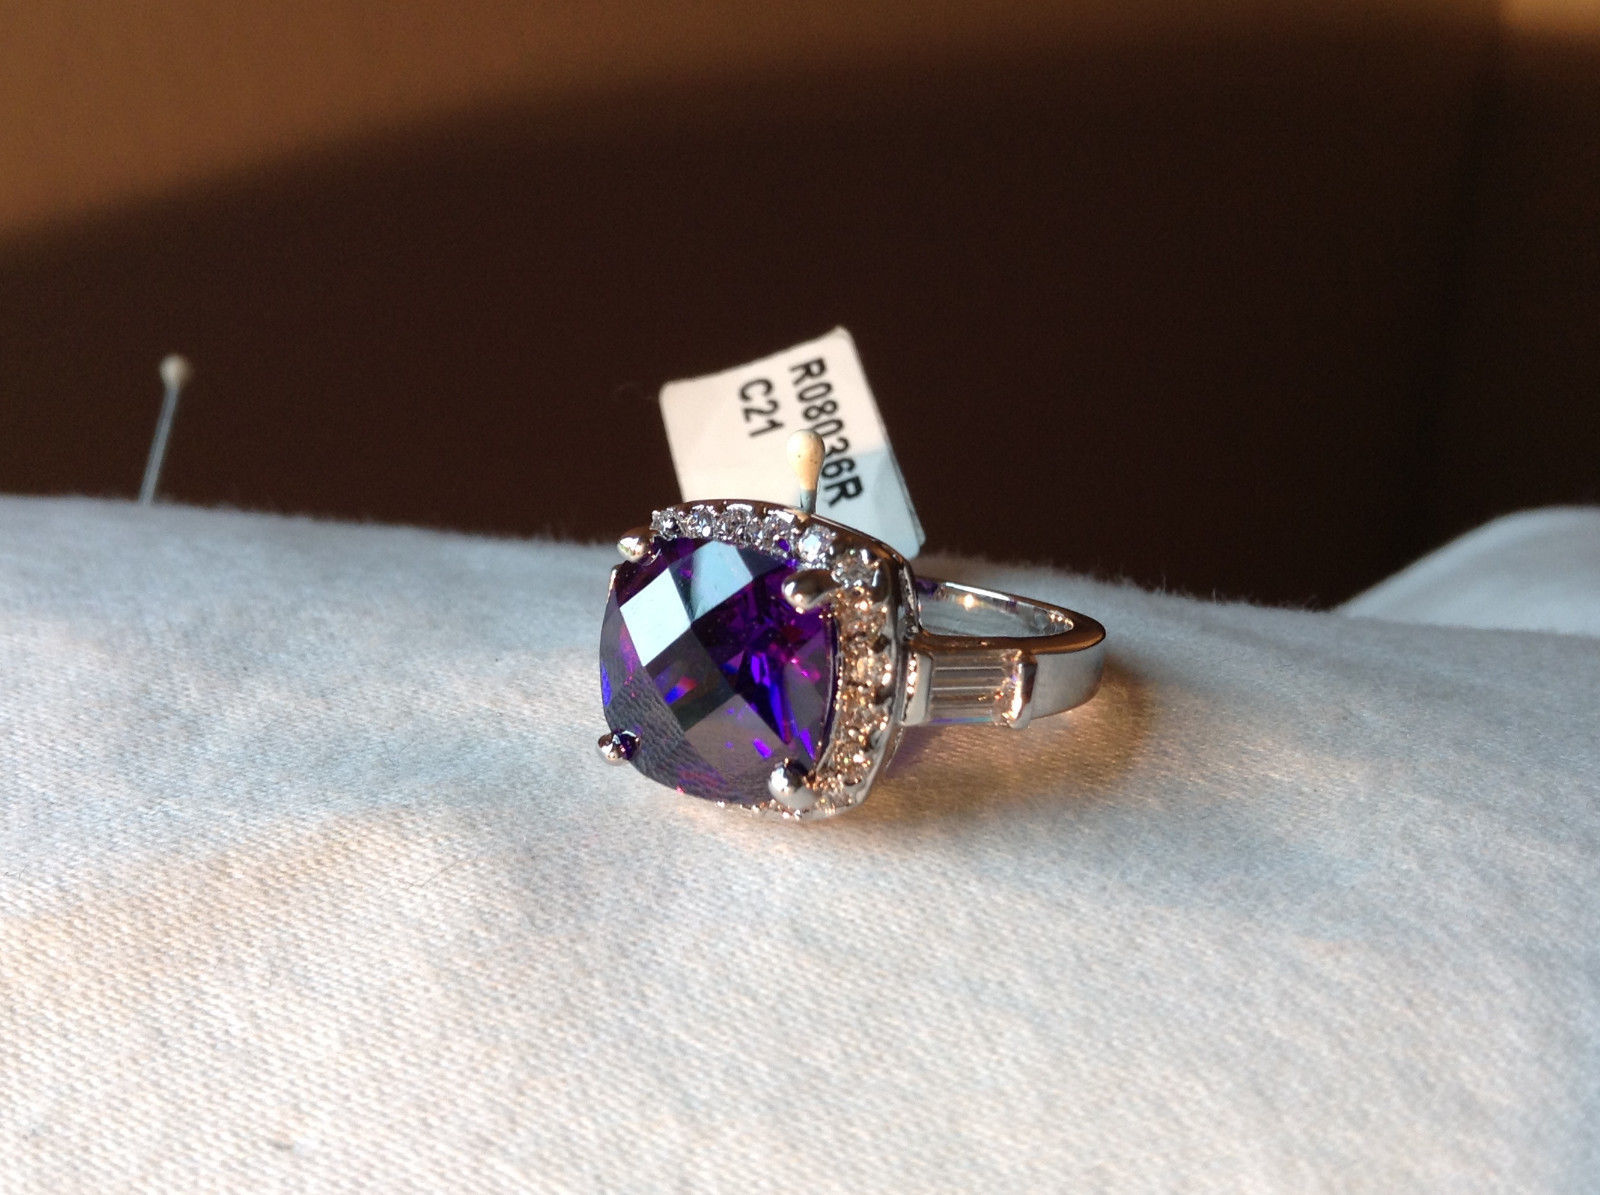 Purple Rounded Square Cut CZ Stainless Steel Ring Sizes 6 and 9